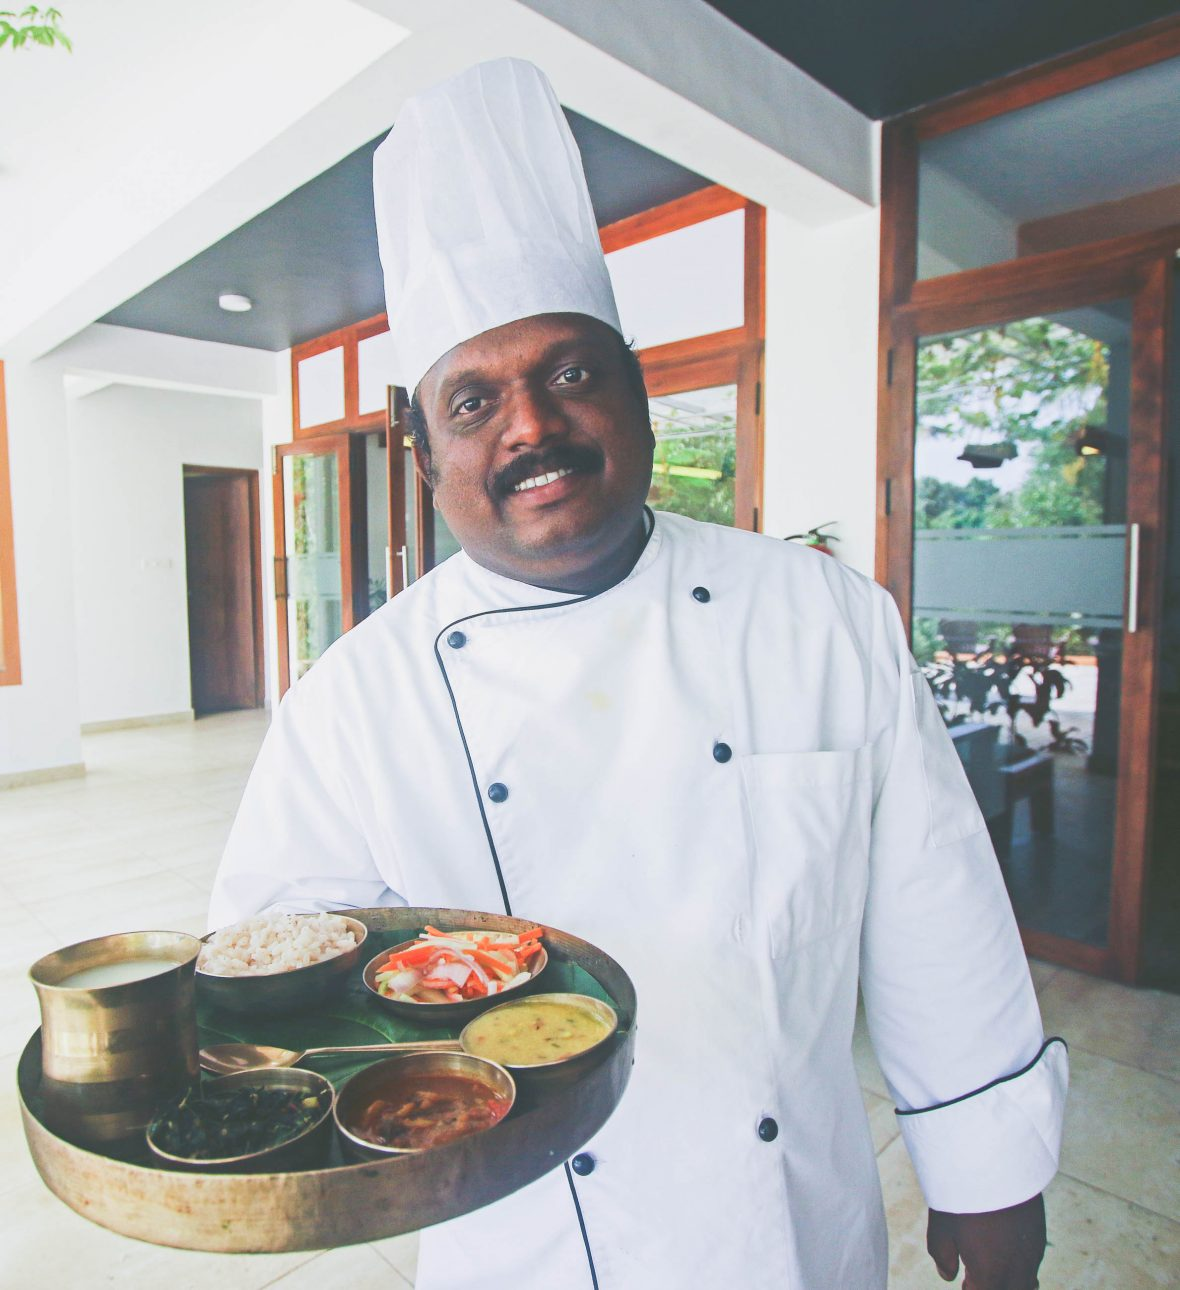 A chef prepares meals consistent with an Ayurveda diet.